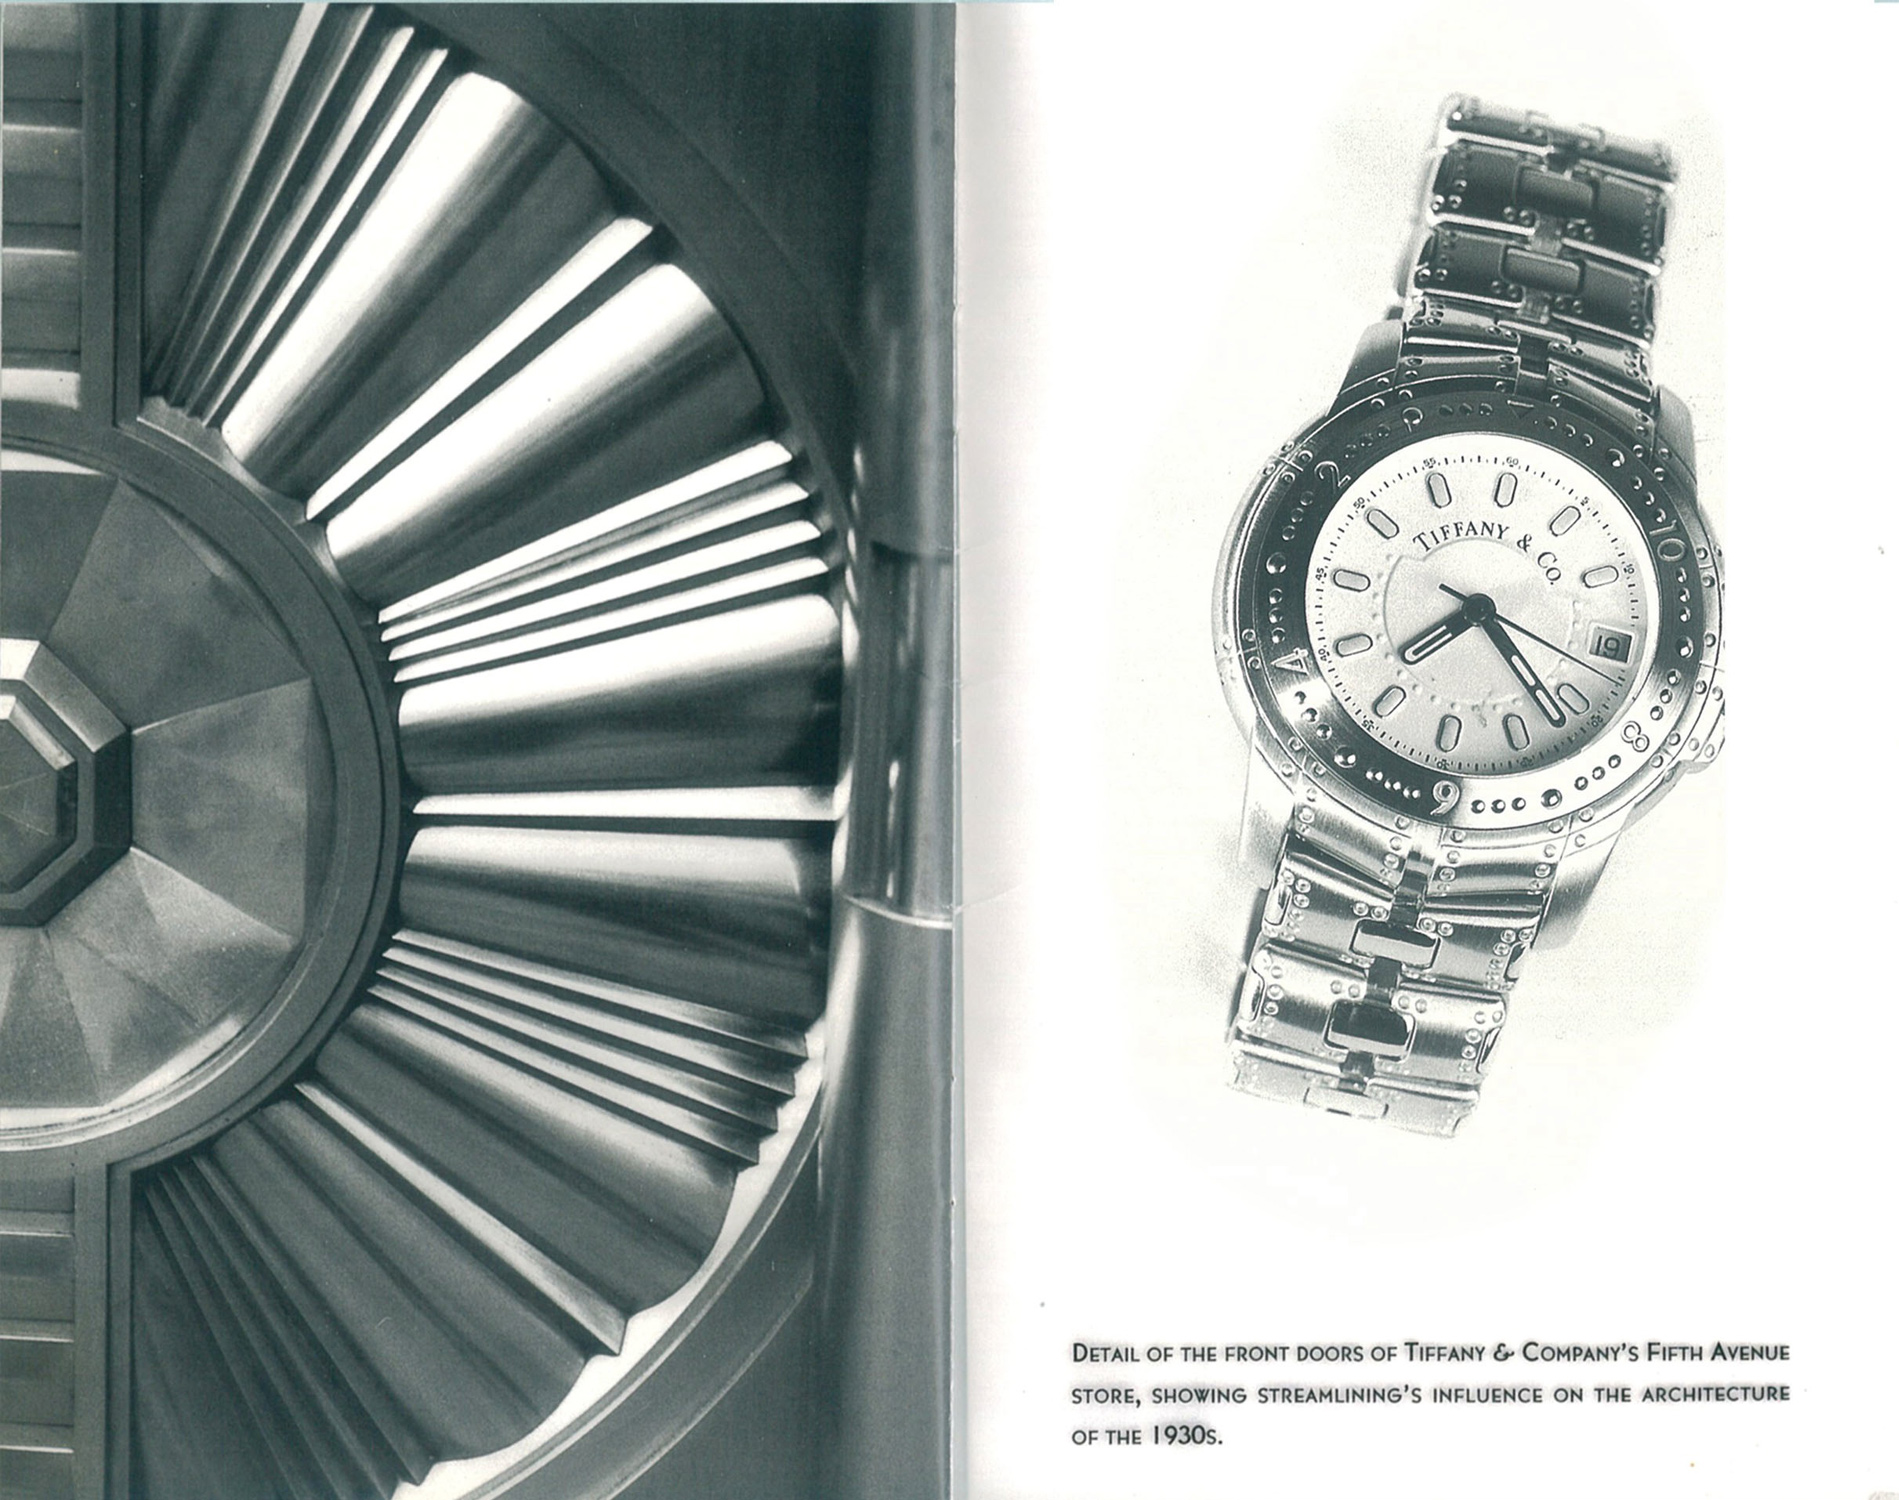 1993 Blue Catalog by Tiffany & Co. Streamerica Automatic Chronometer in all Stainless Steel band and white face.